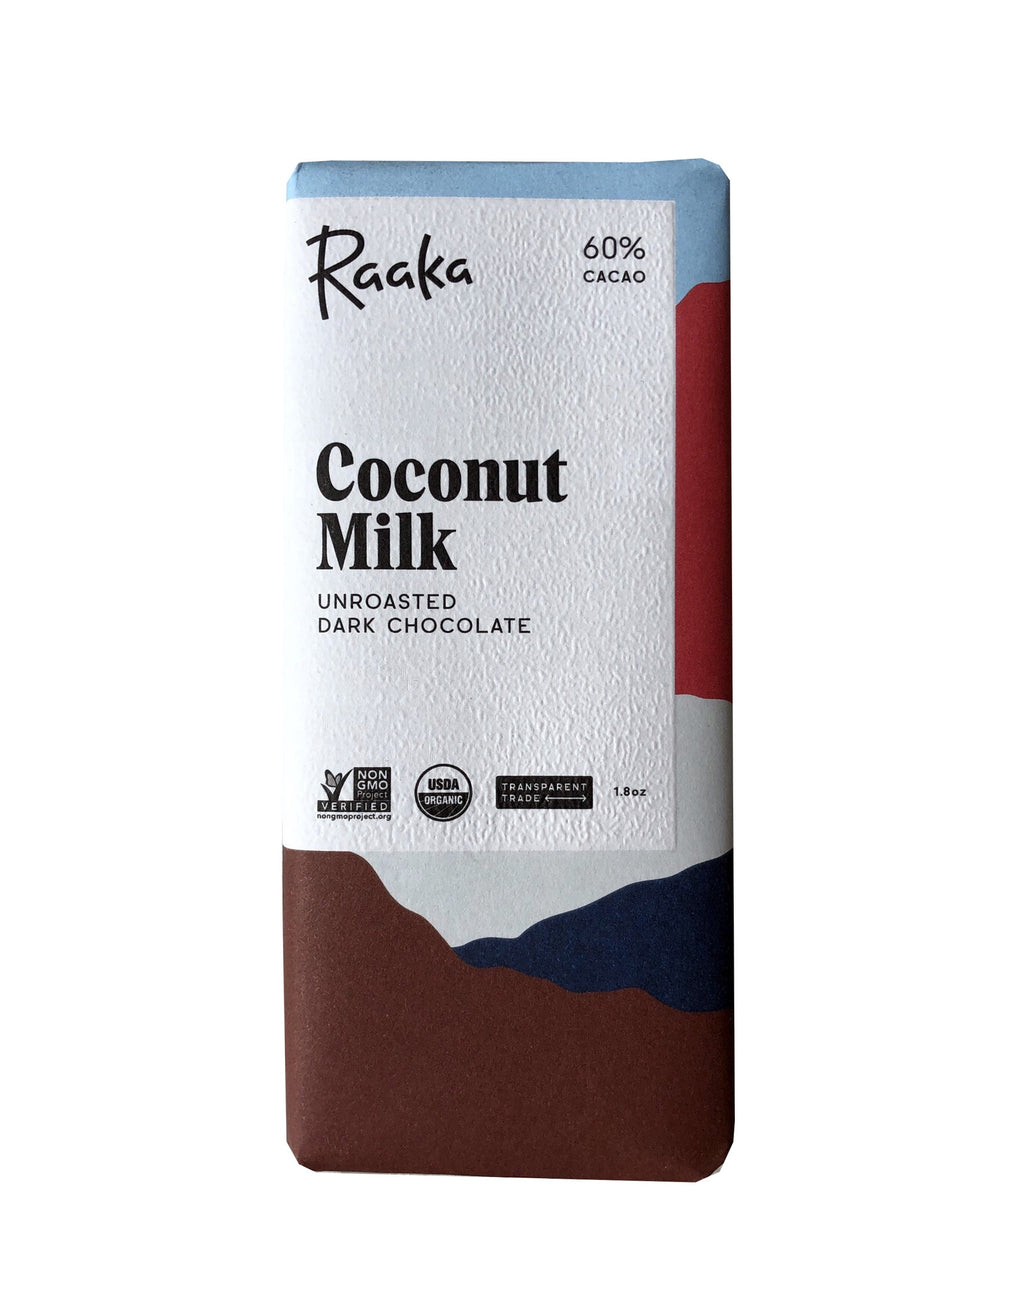 Coconut Milk Raaka Chocolate